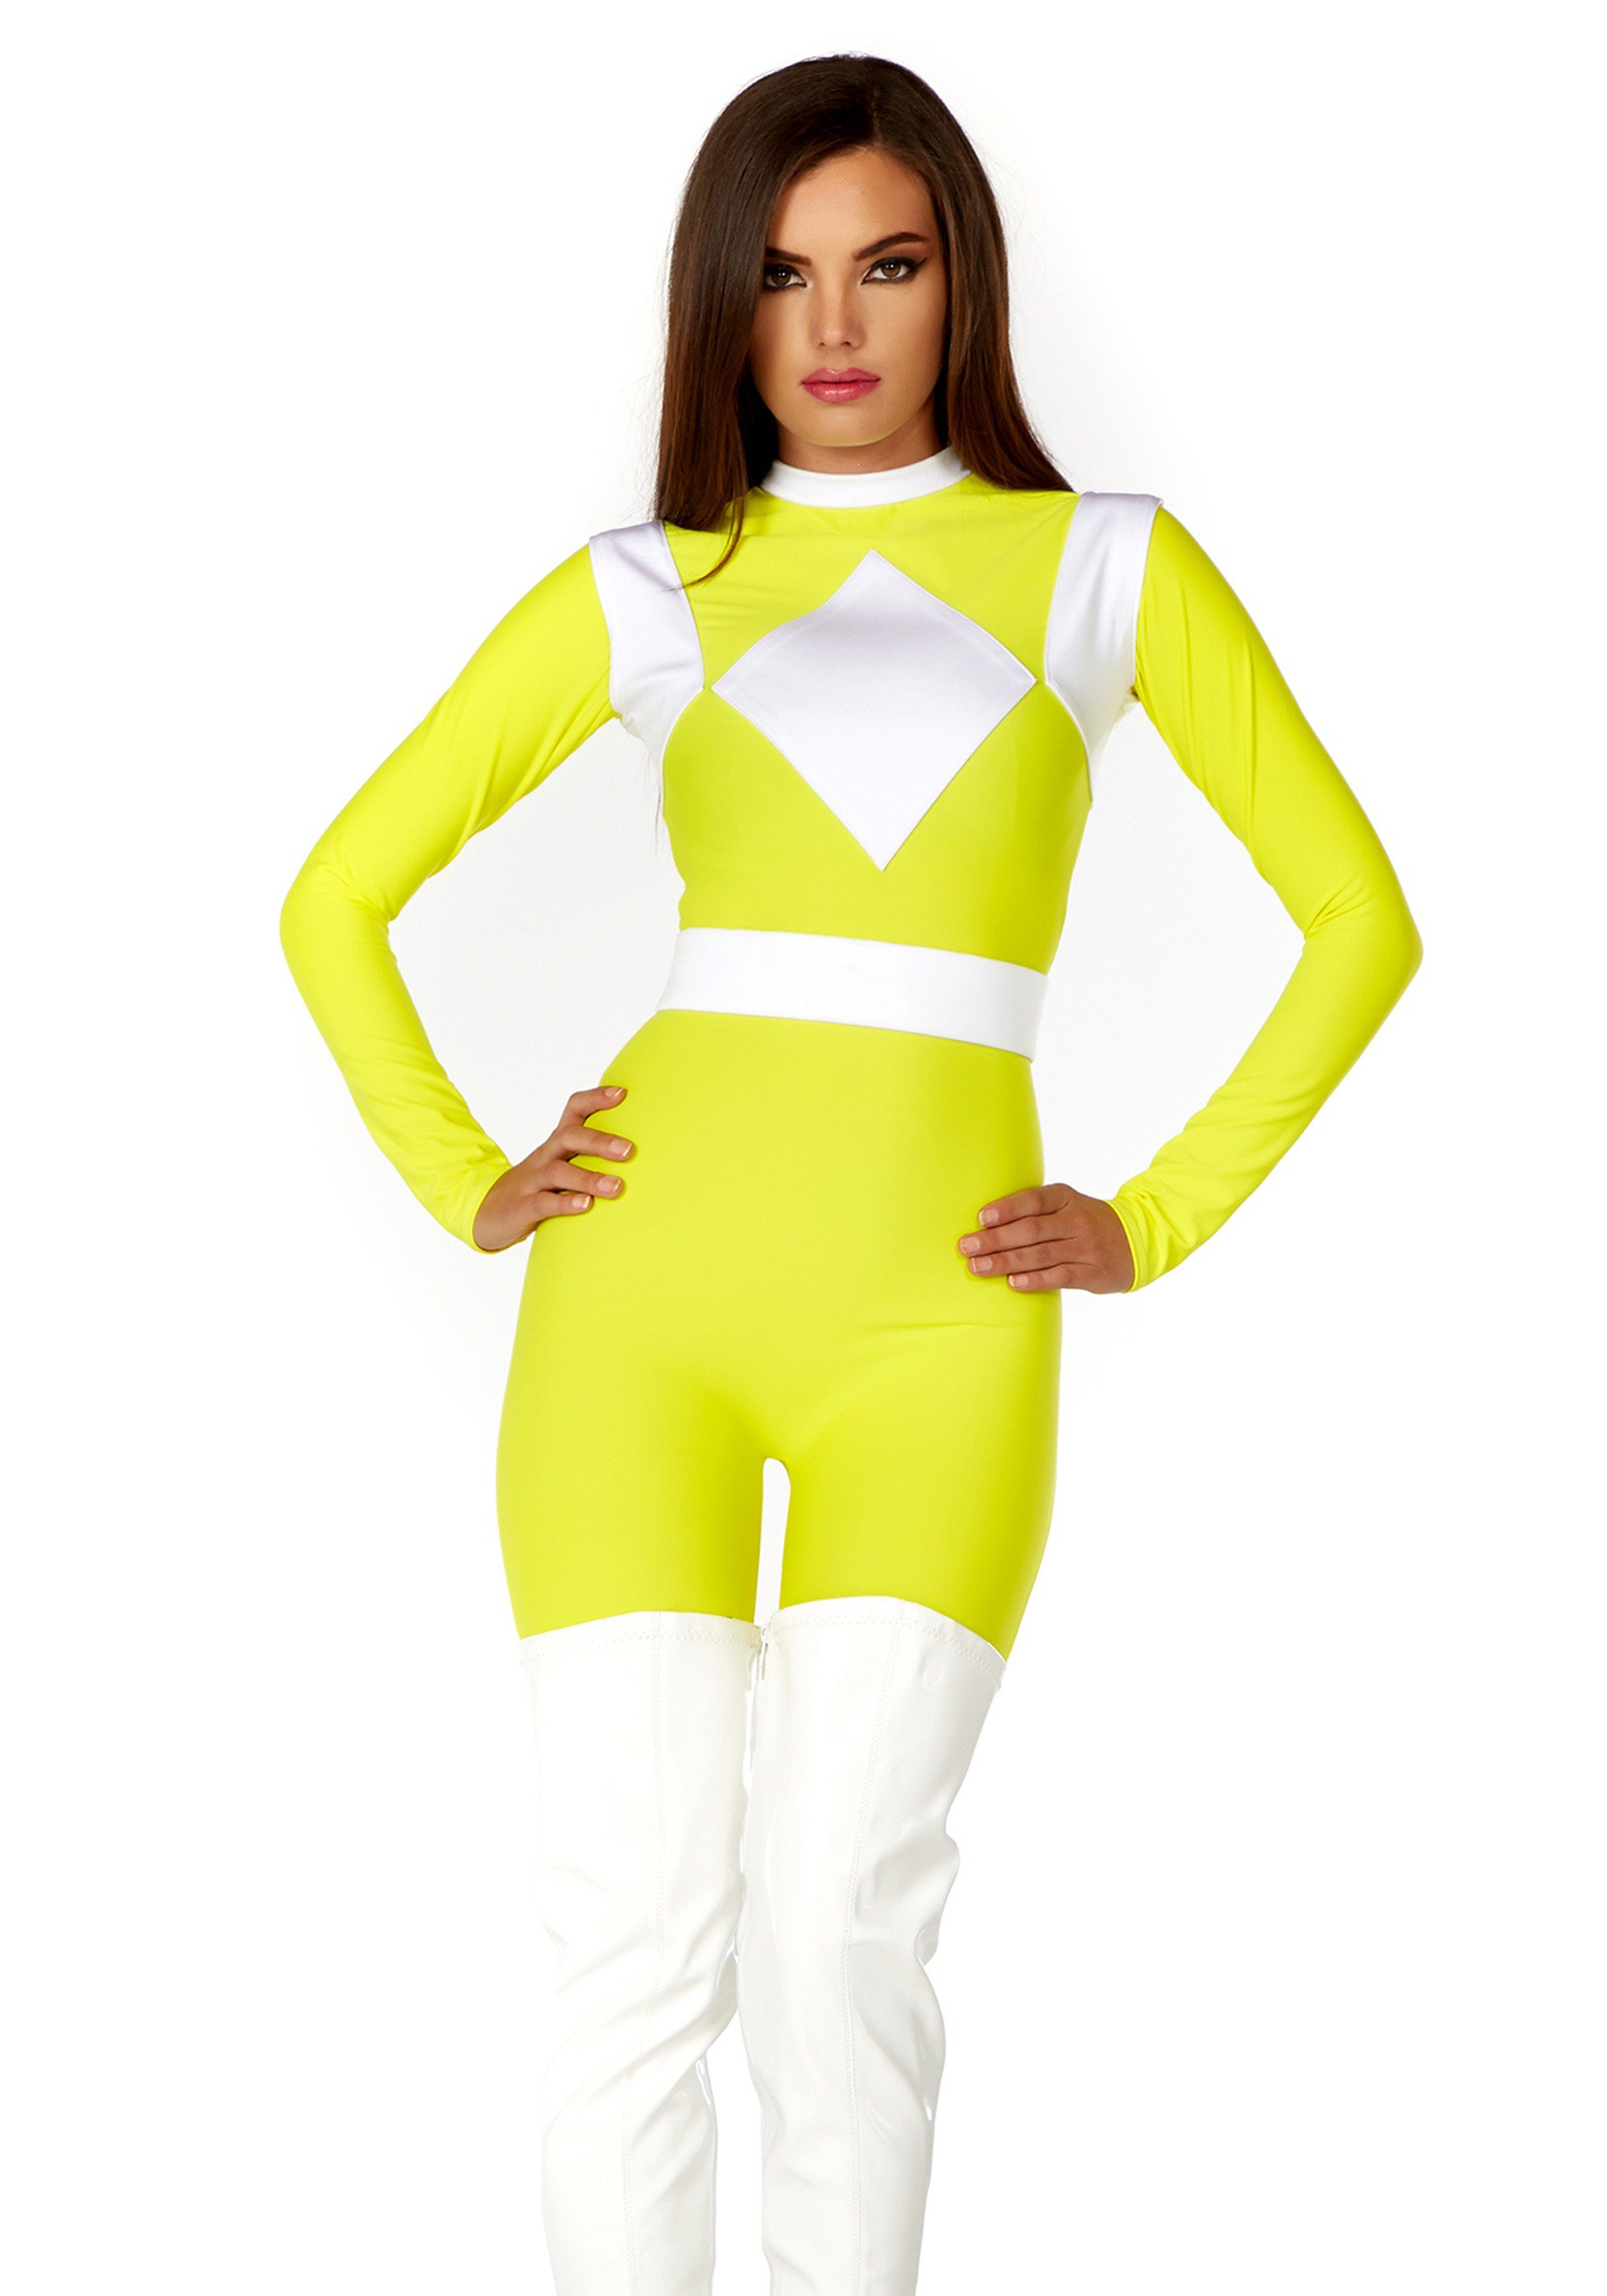 Womens Dominance Action Figure Yellow Catsuit Costume-3337